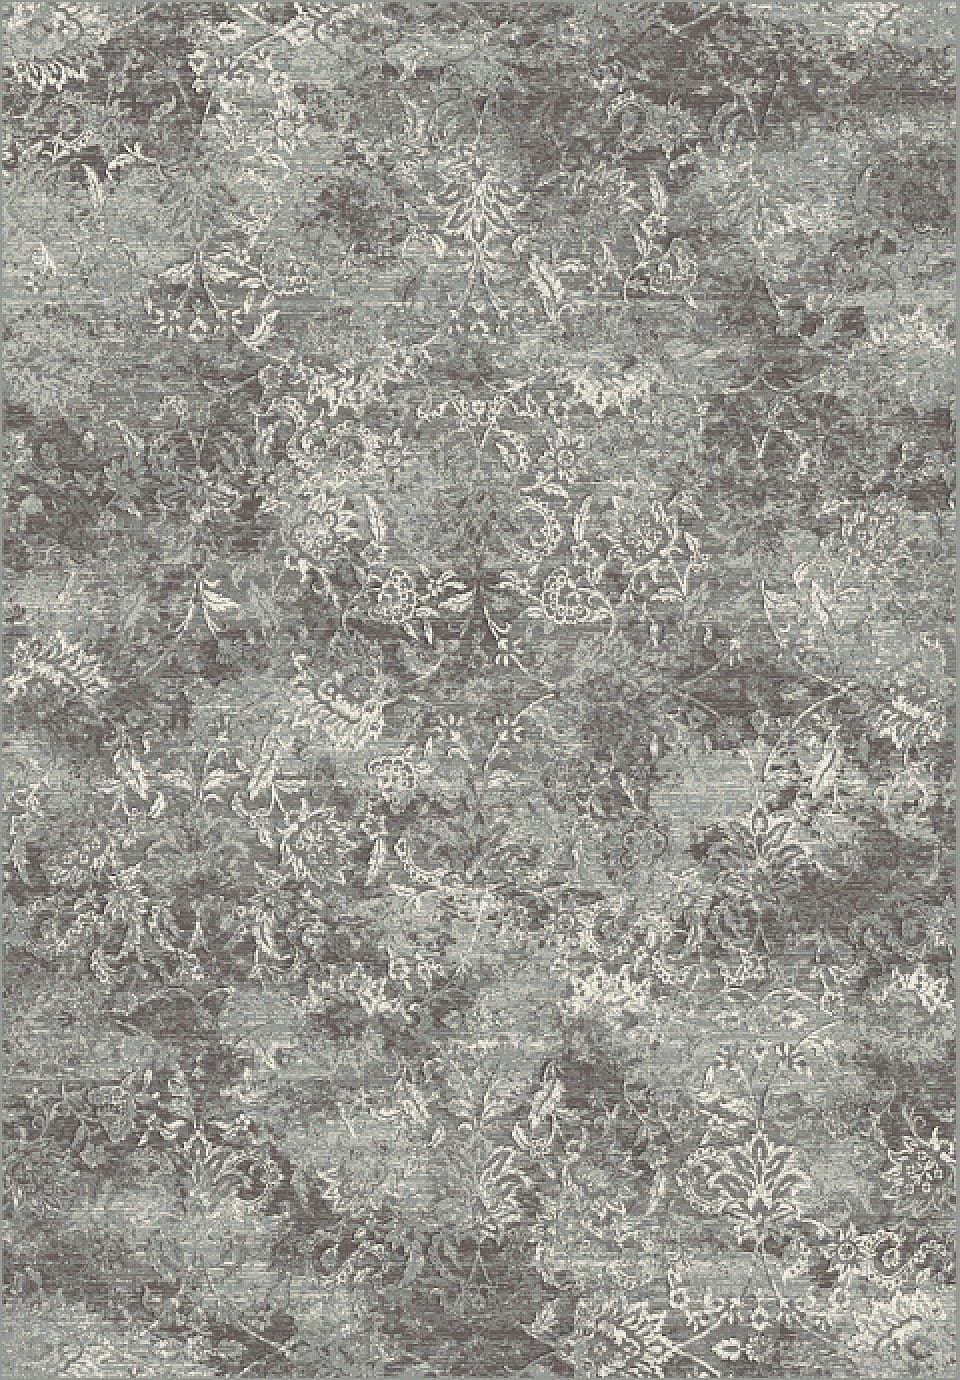 Regal Grey & Silver Distressed 2.2'x7.7' Rectangle Rug